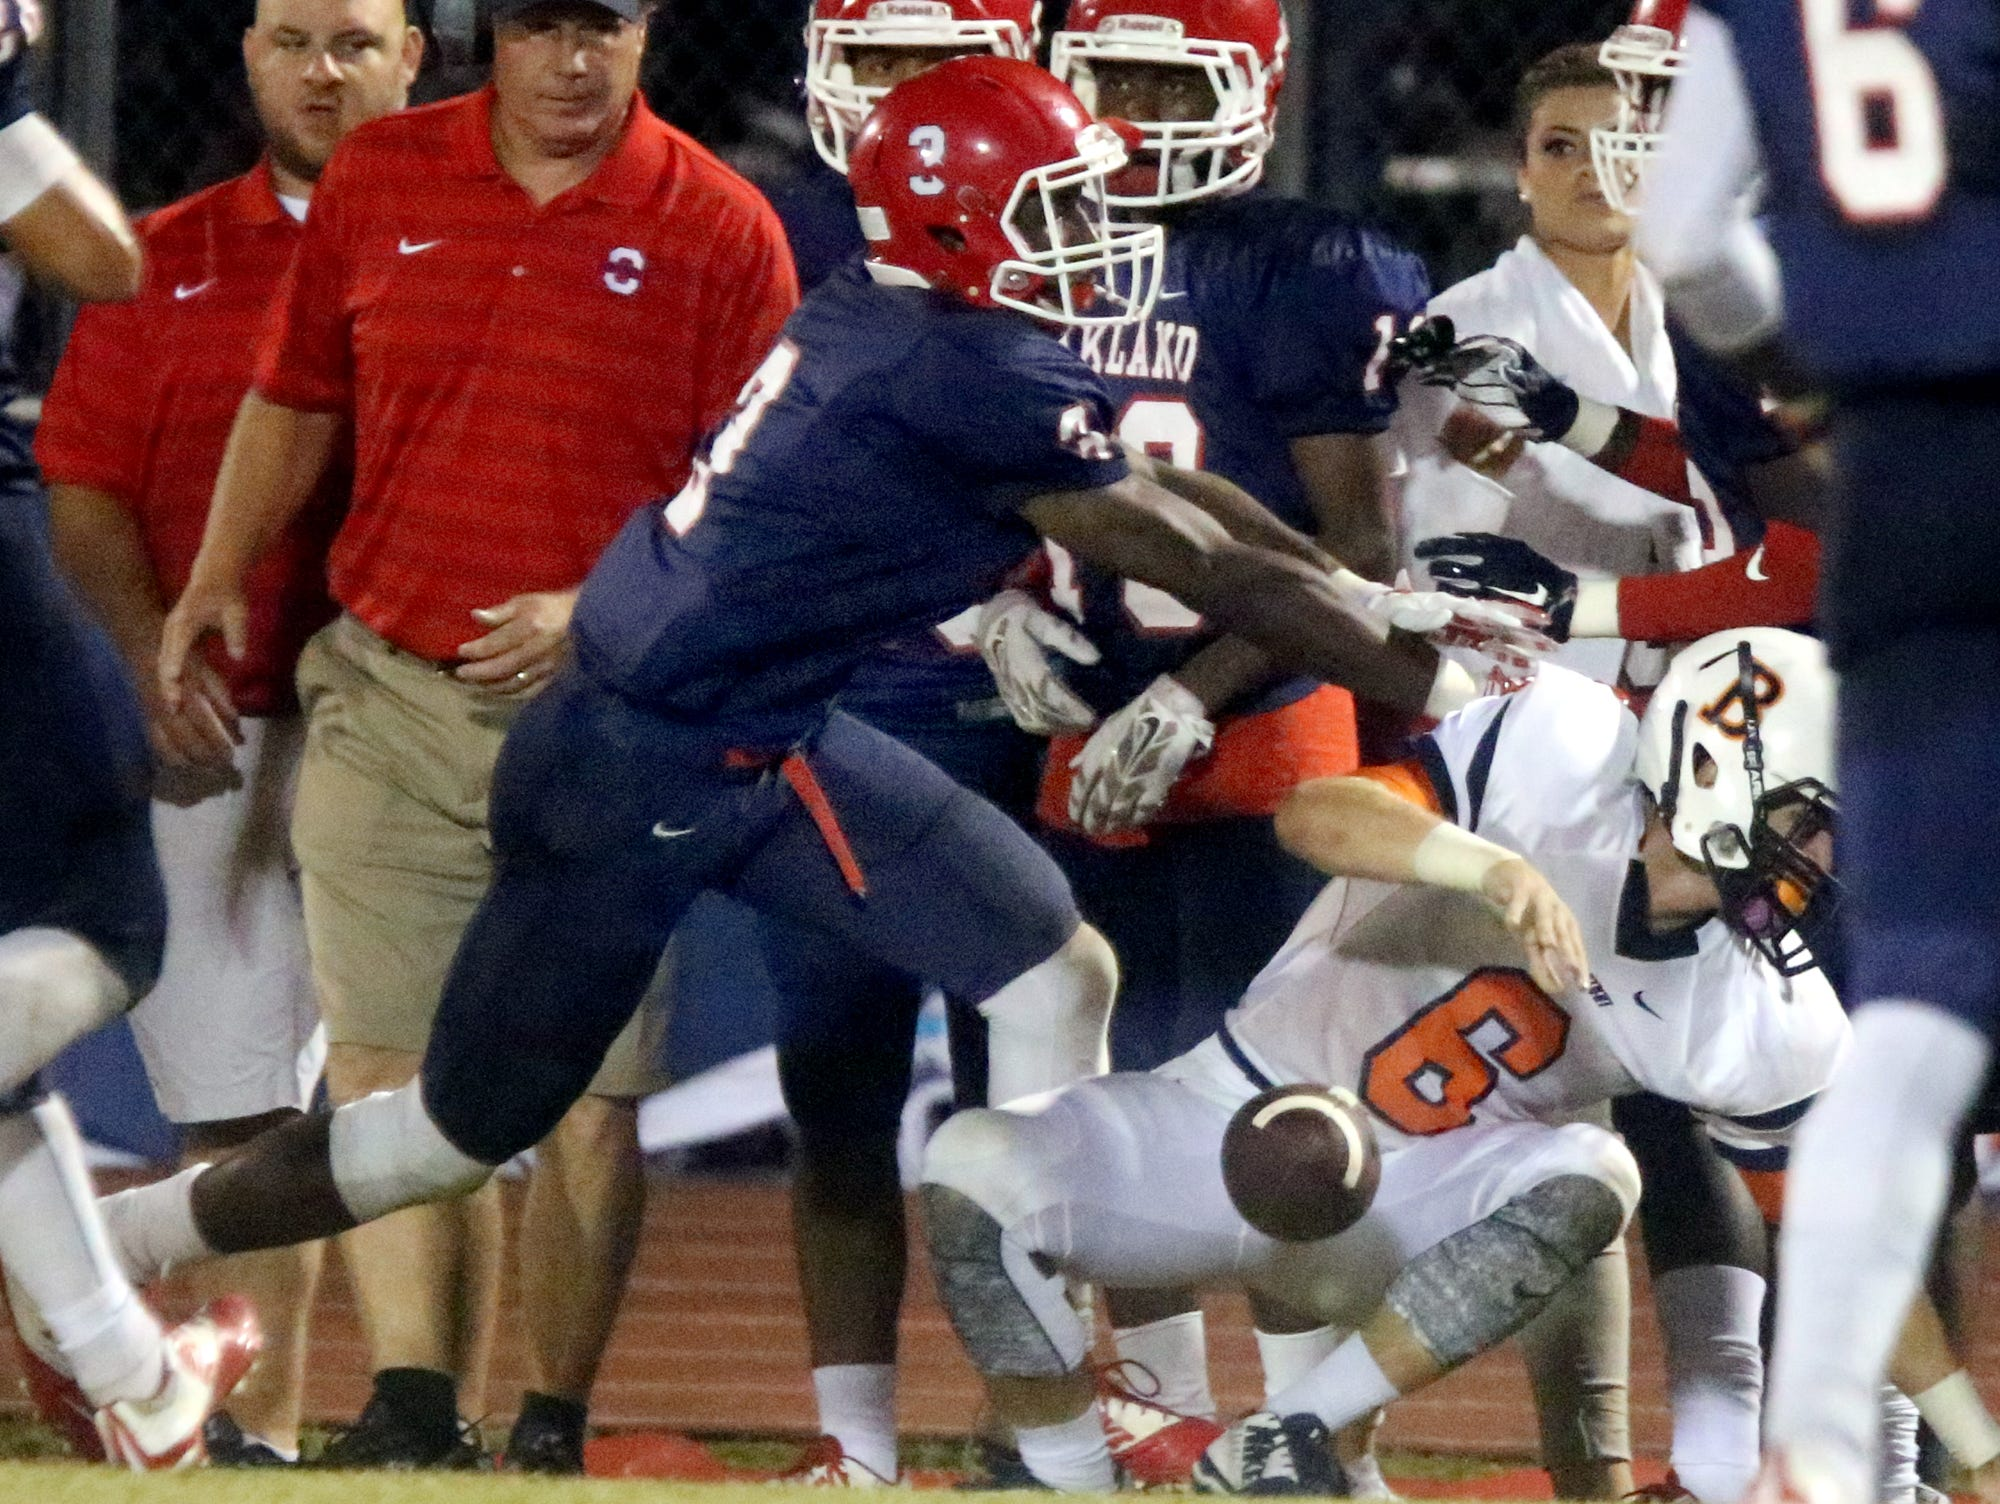 Blackman's Connor Mitchell (6) falls as hurts his knee after a catch and a run while Oakland's Wanya Moton comes in for the tackle, during the game at Oakland, on Friday Sept. 18, 2015.